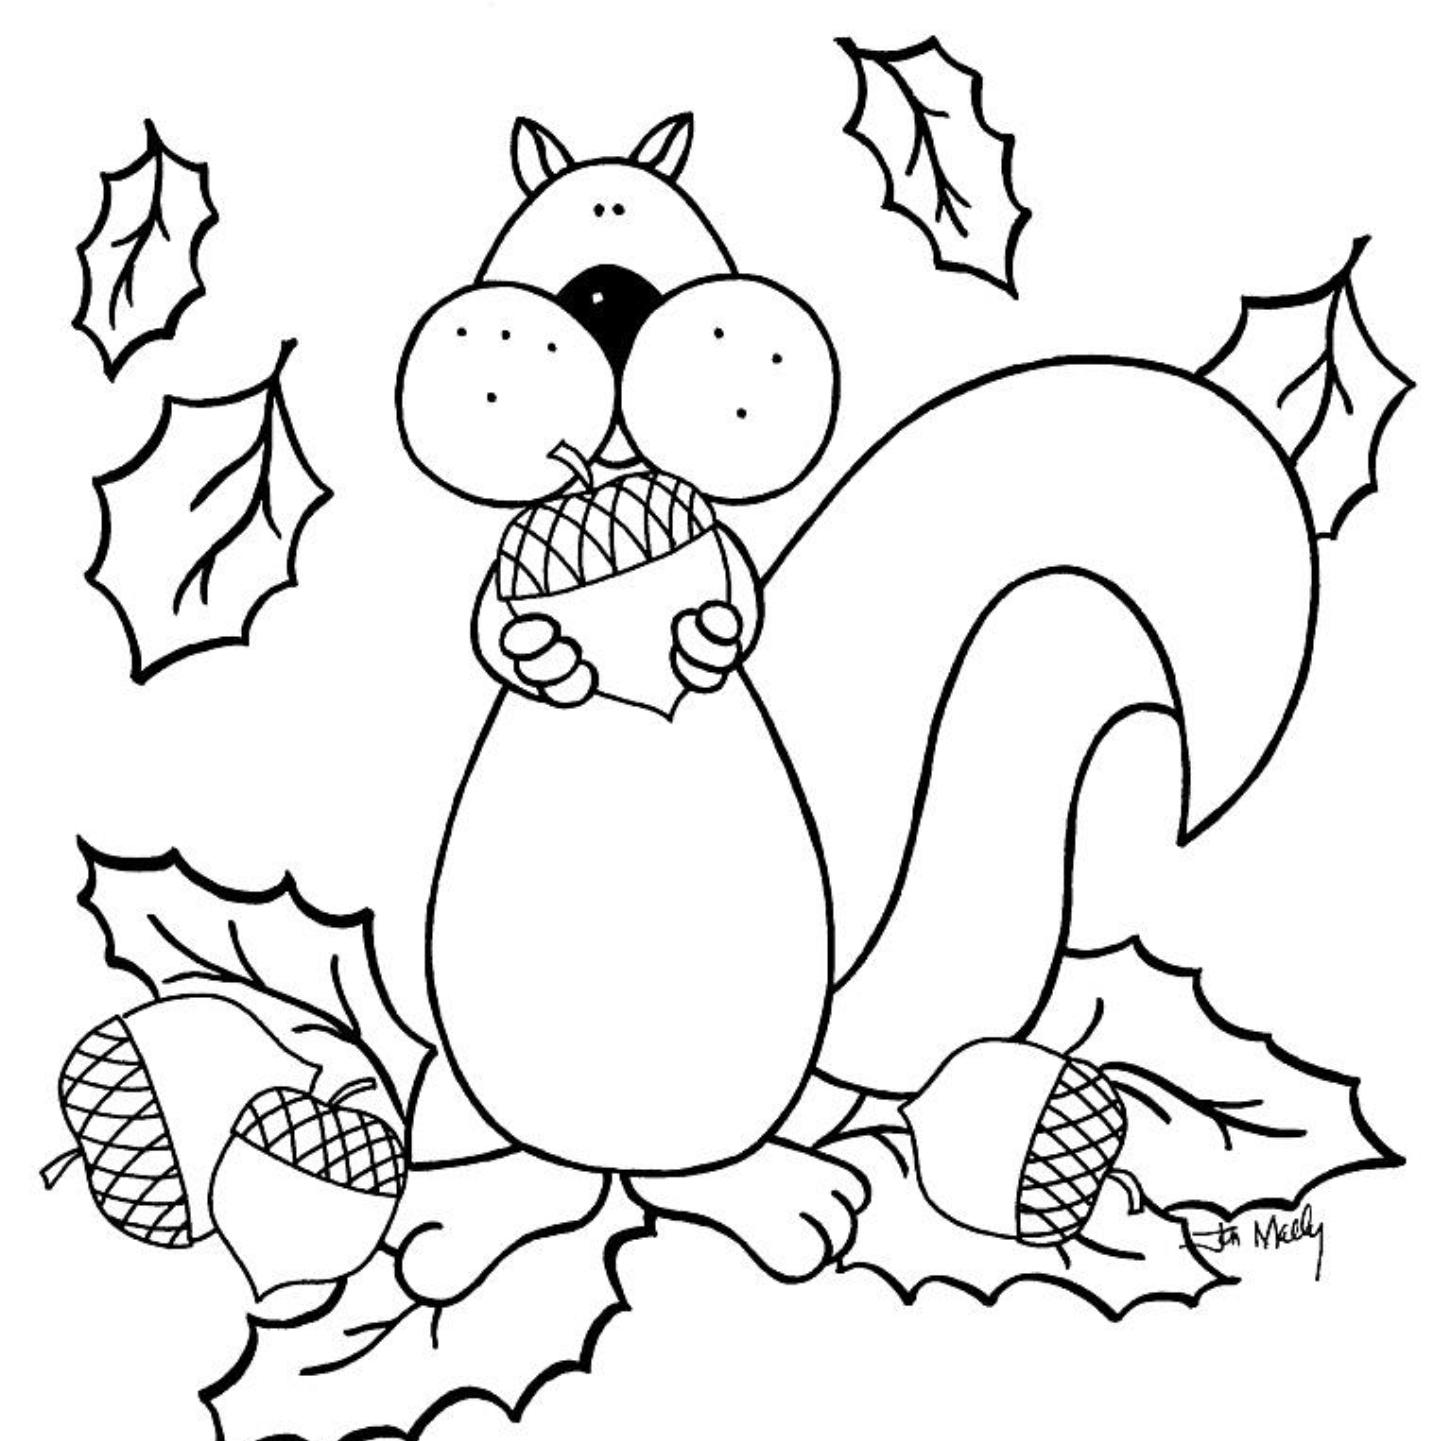 fall coloring sheets printable happy fall fun fall books activities updated for fall printable fall sheets coloring